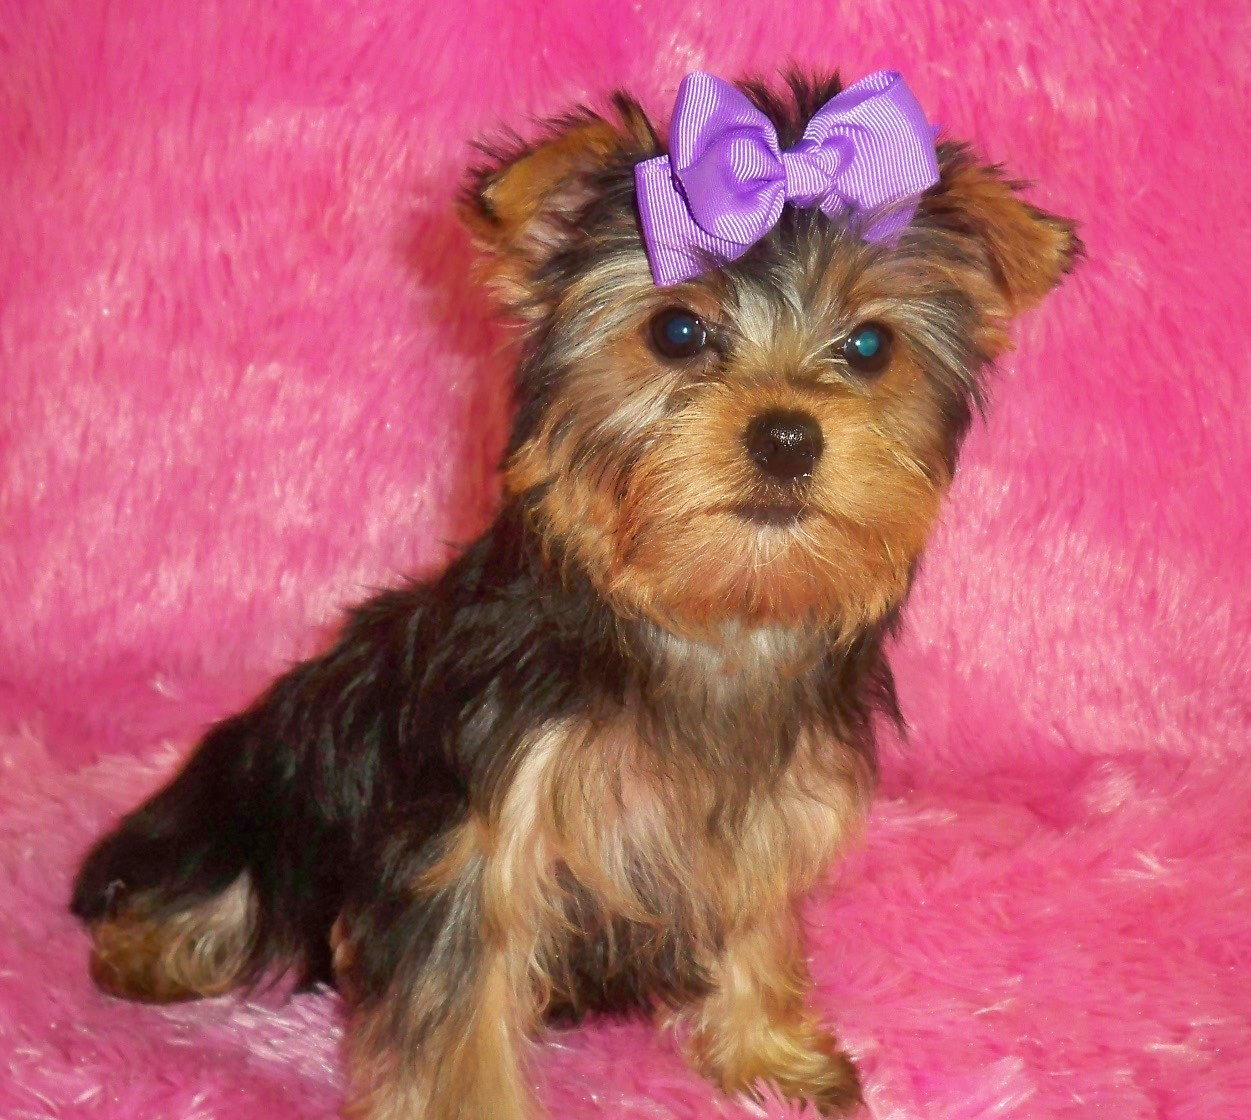 1024x768 wallpaper of yorkies - photo #29